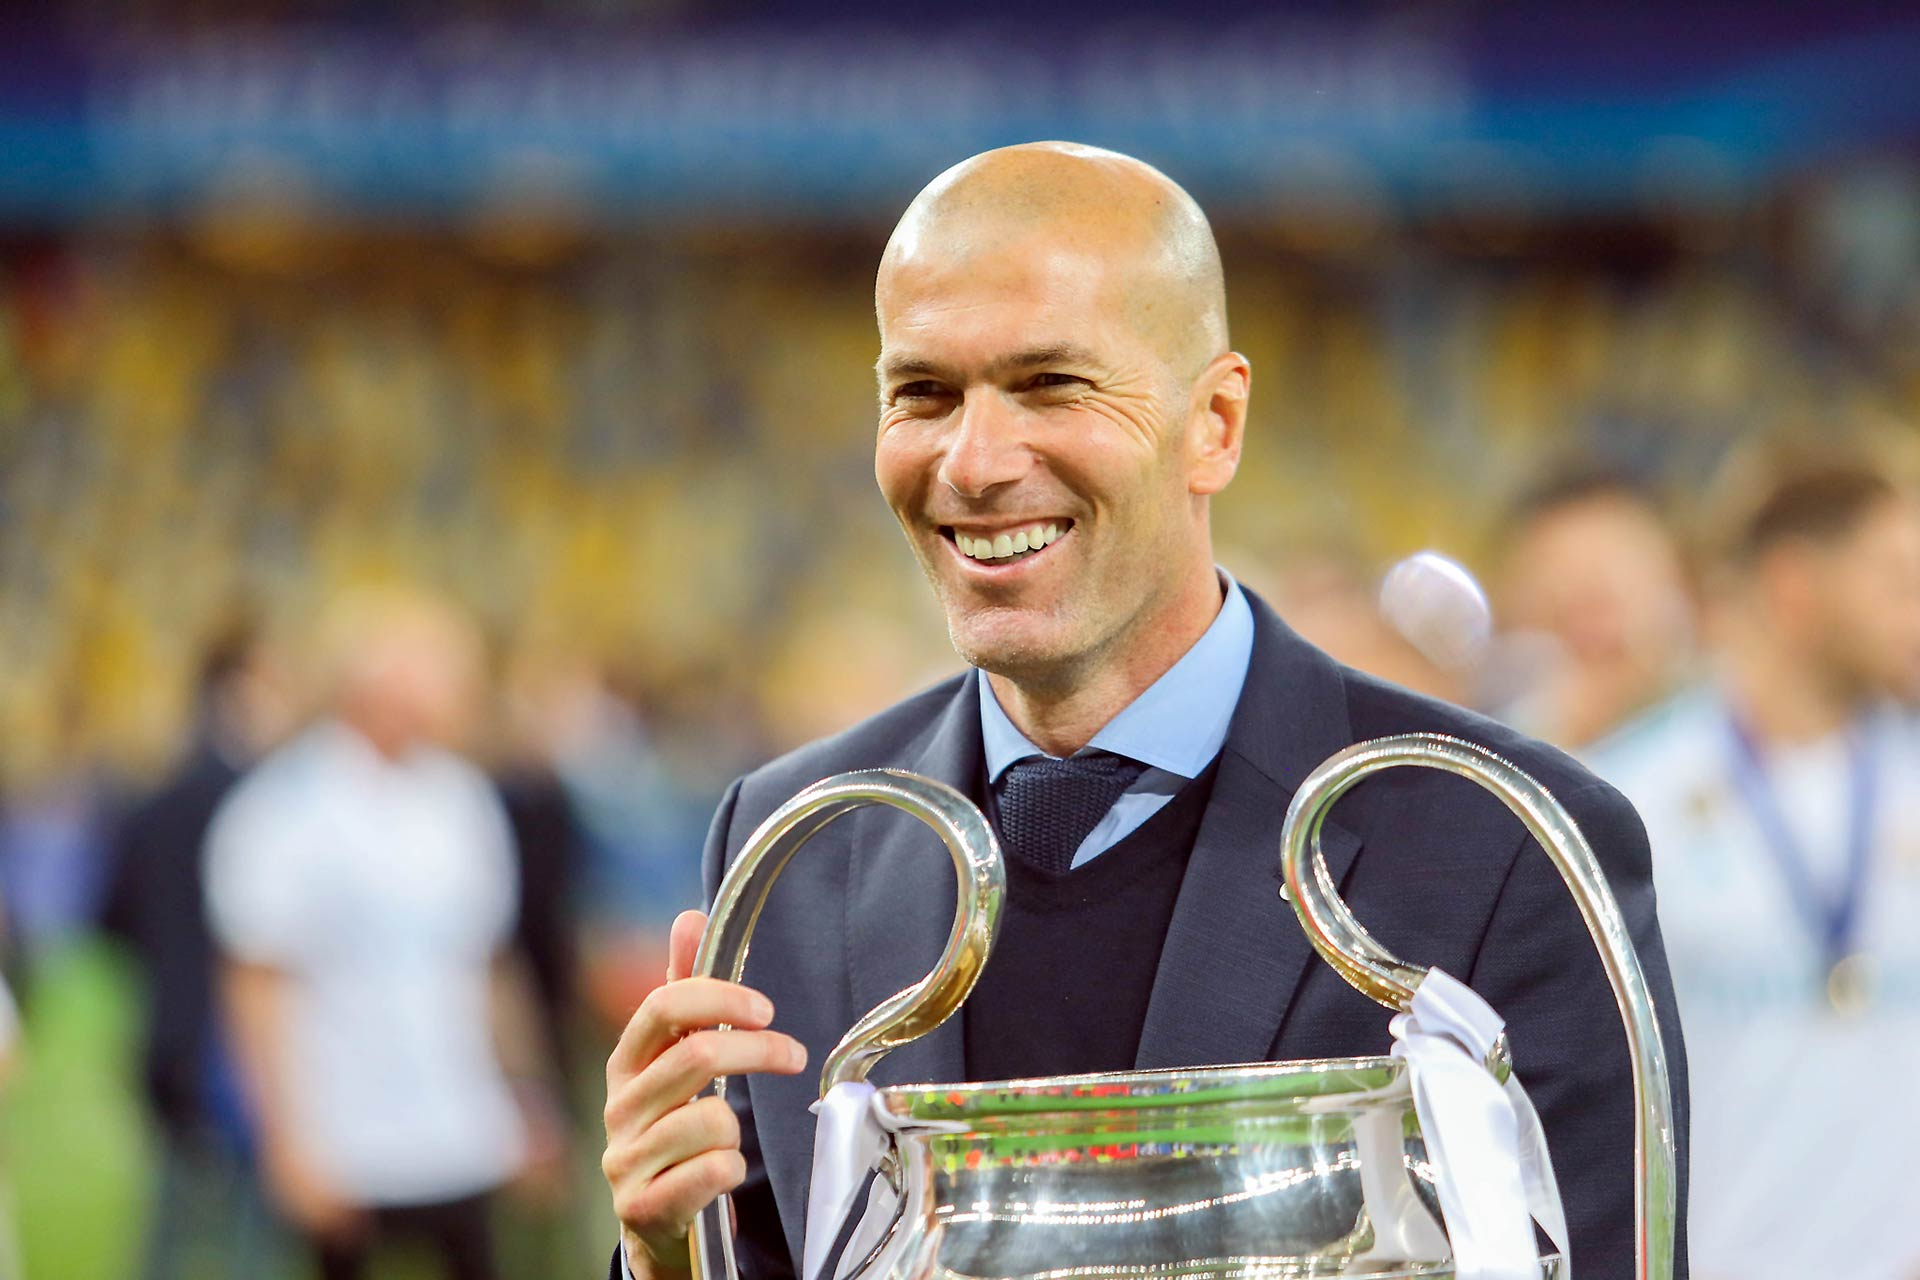 Zinedine Zidane in 2016 (Photo: Oleg Dubyna)